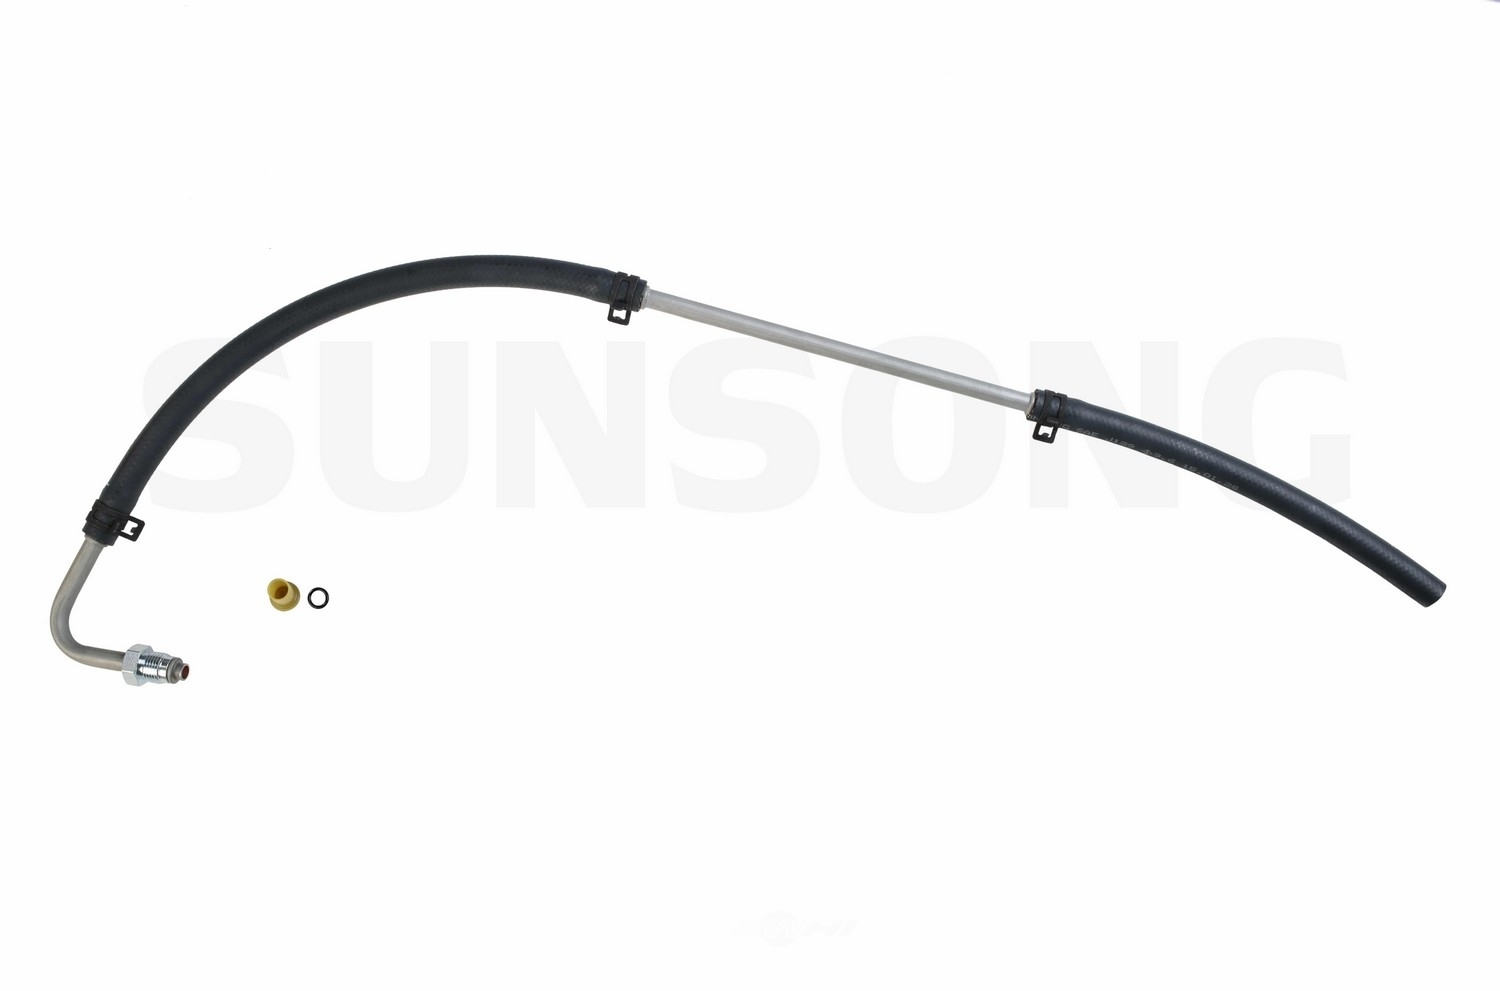 power steering return line hose assembly fits 03